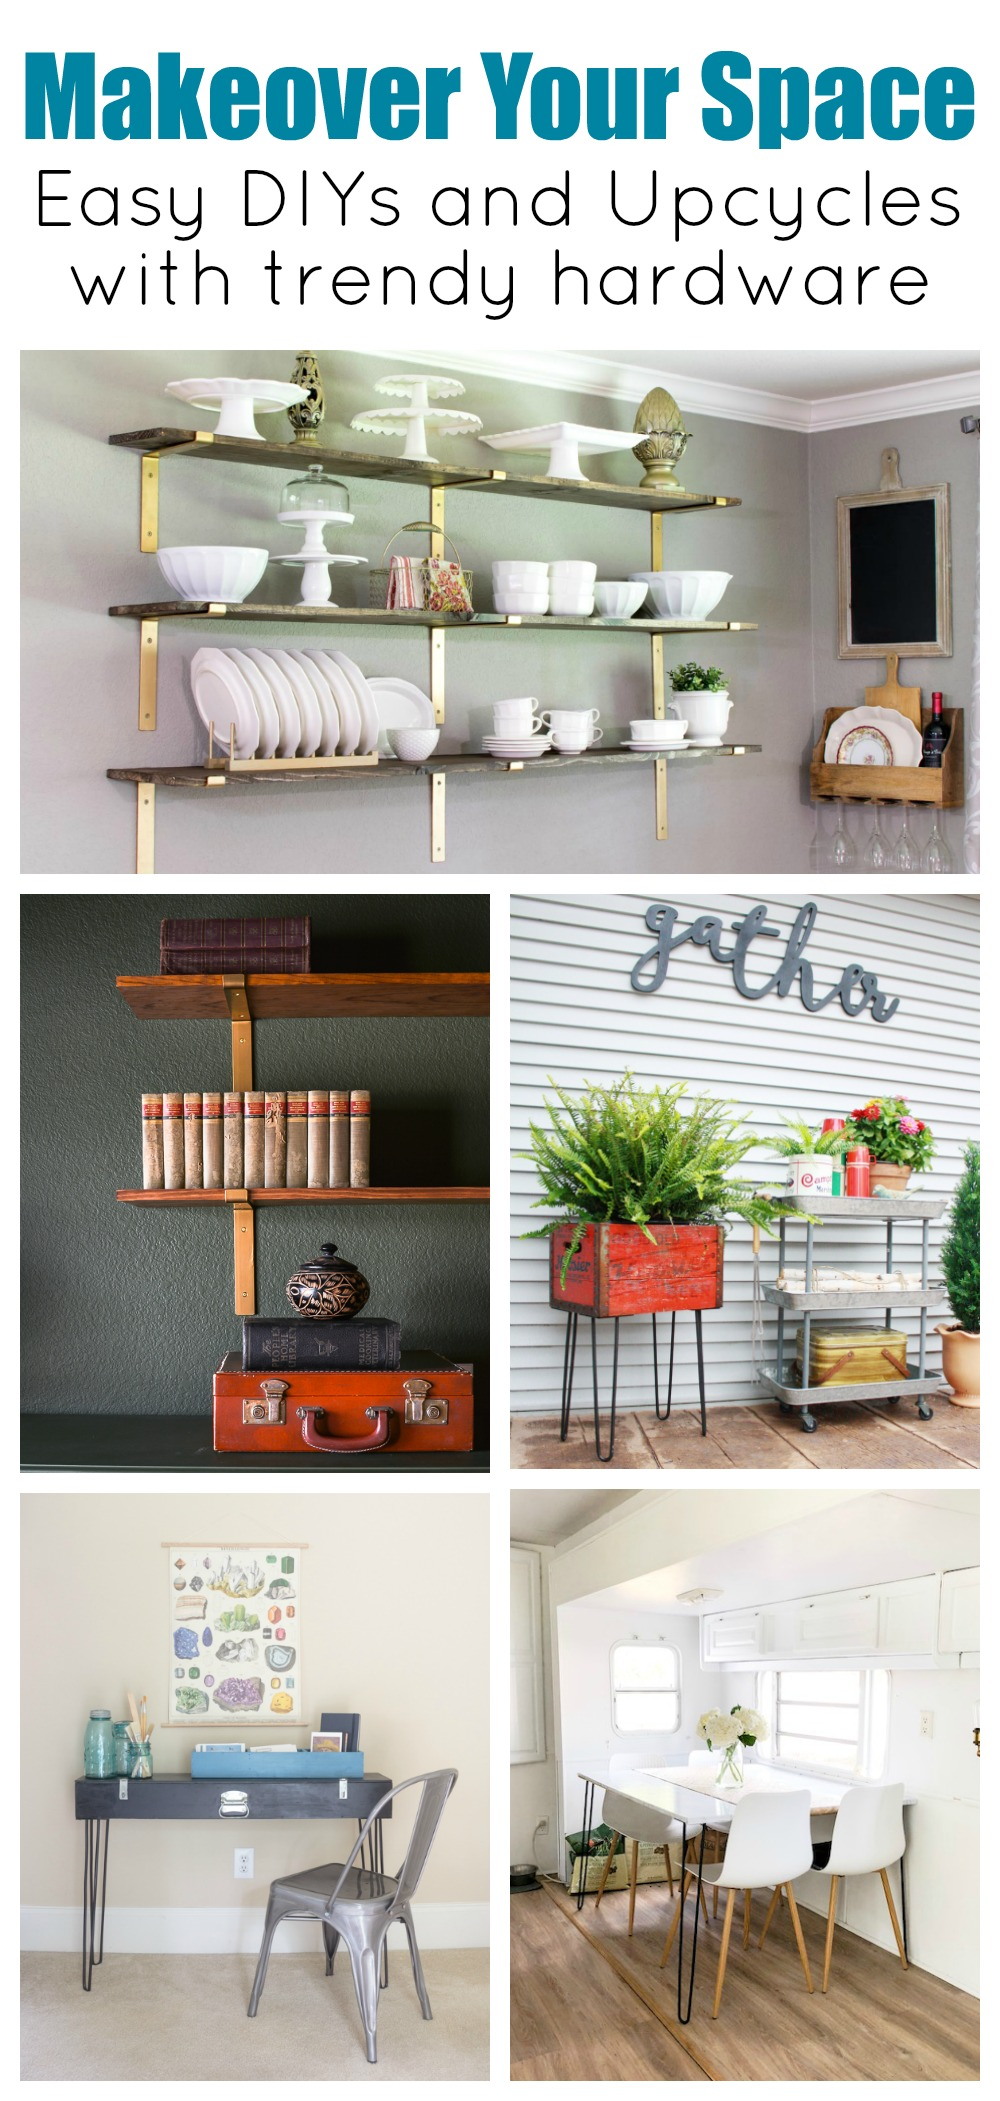 Makeover your space! Easy DIYs and Upcycles with trendy hardware.